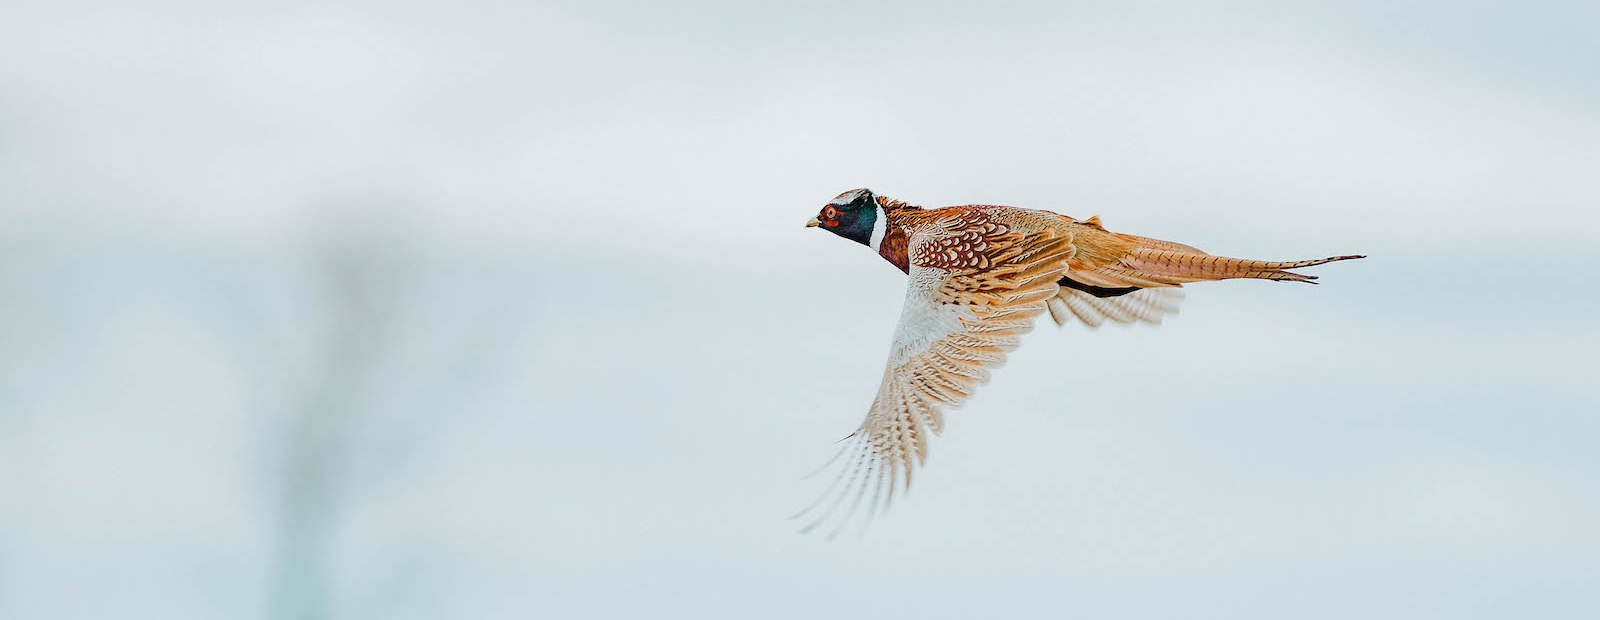 A rooster pheasant flies against a gray winter sky